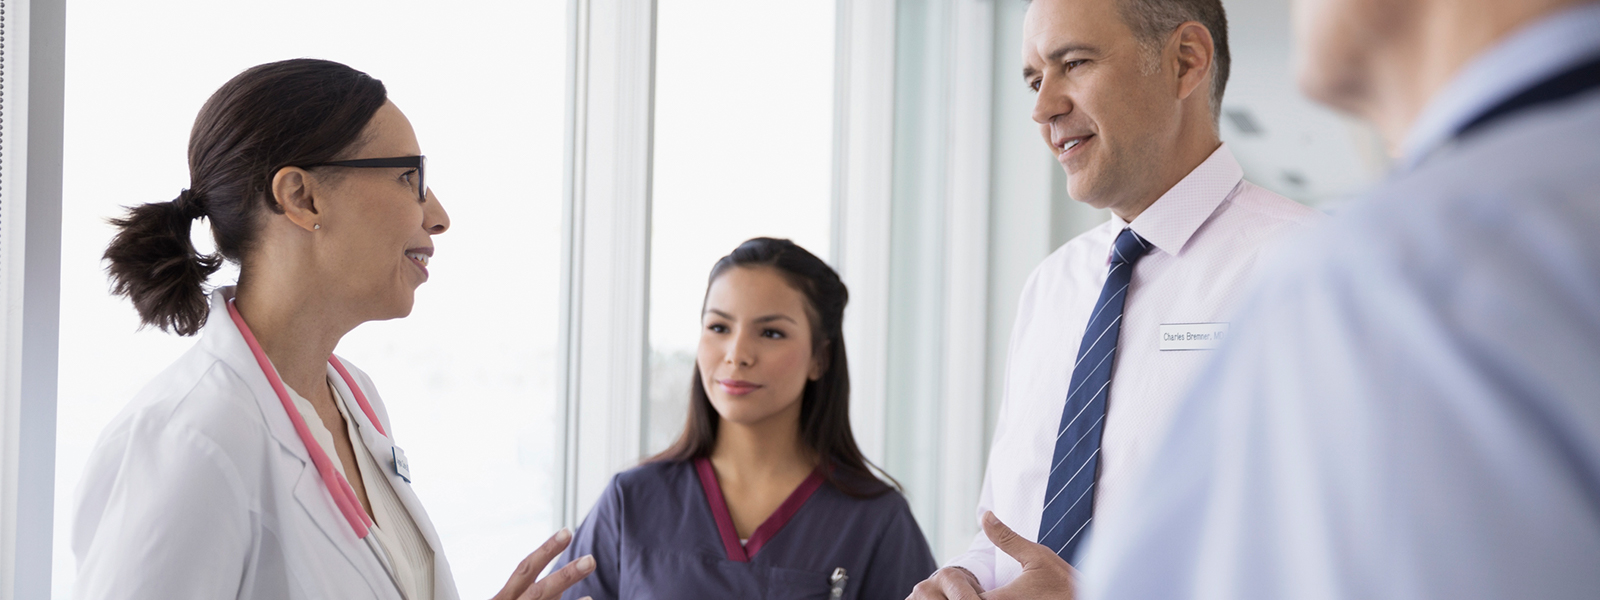 The future of HR careers within Healthcare - Q&A with Chief